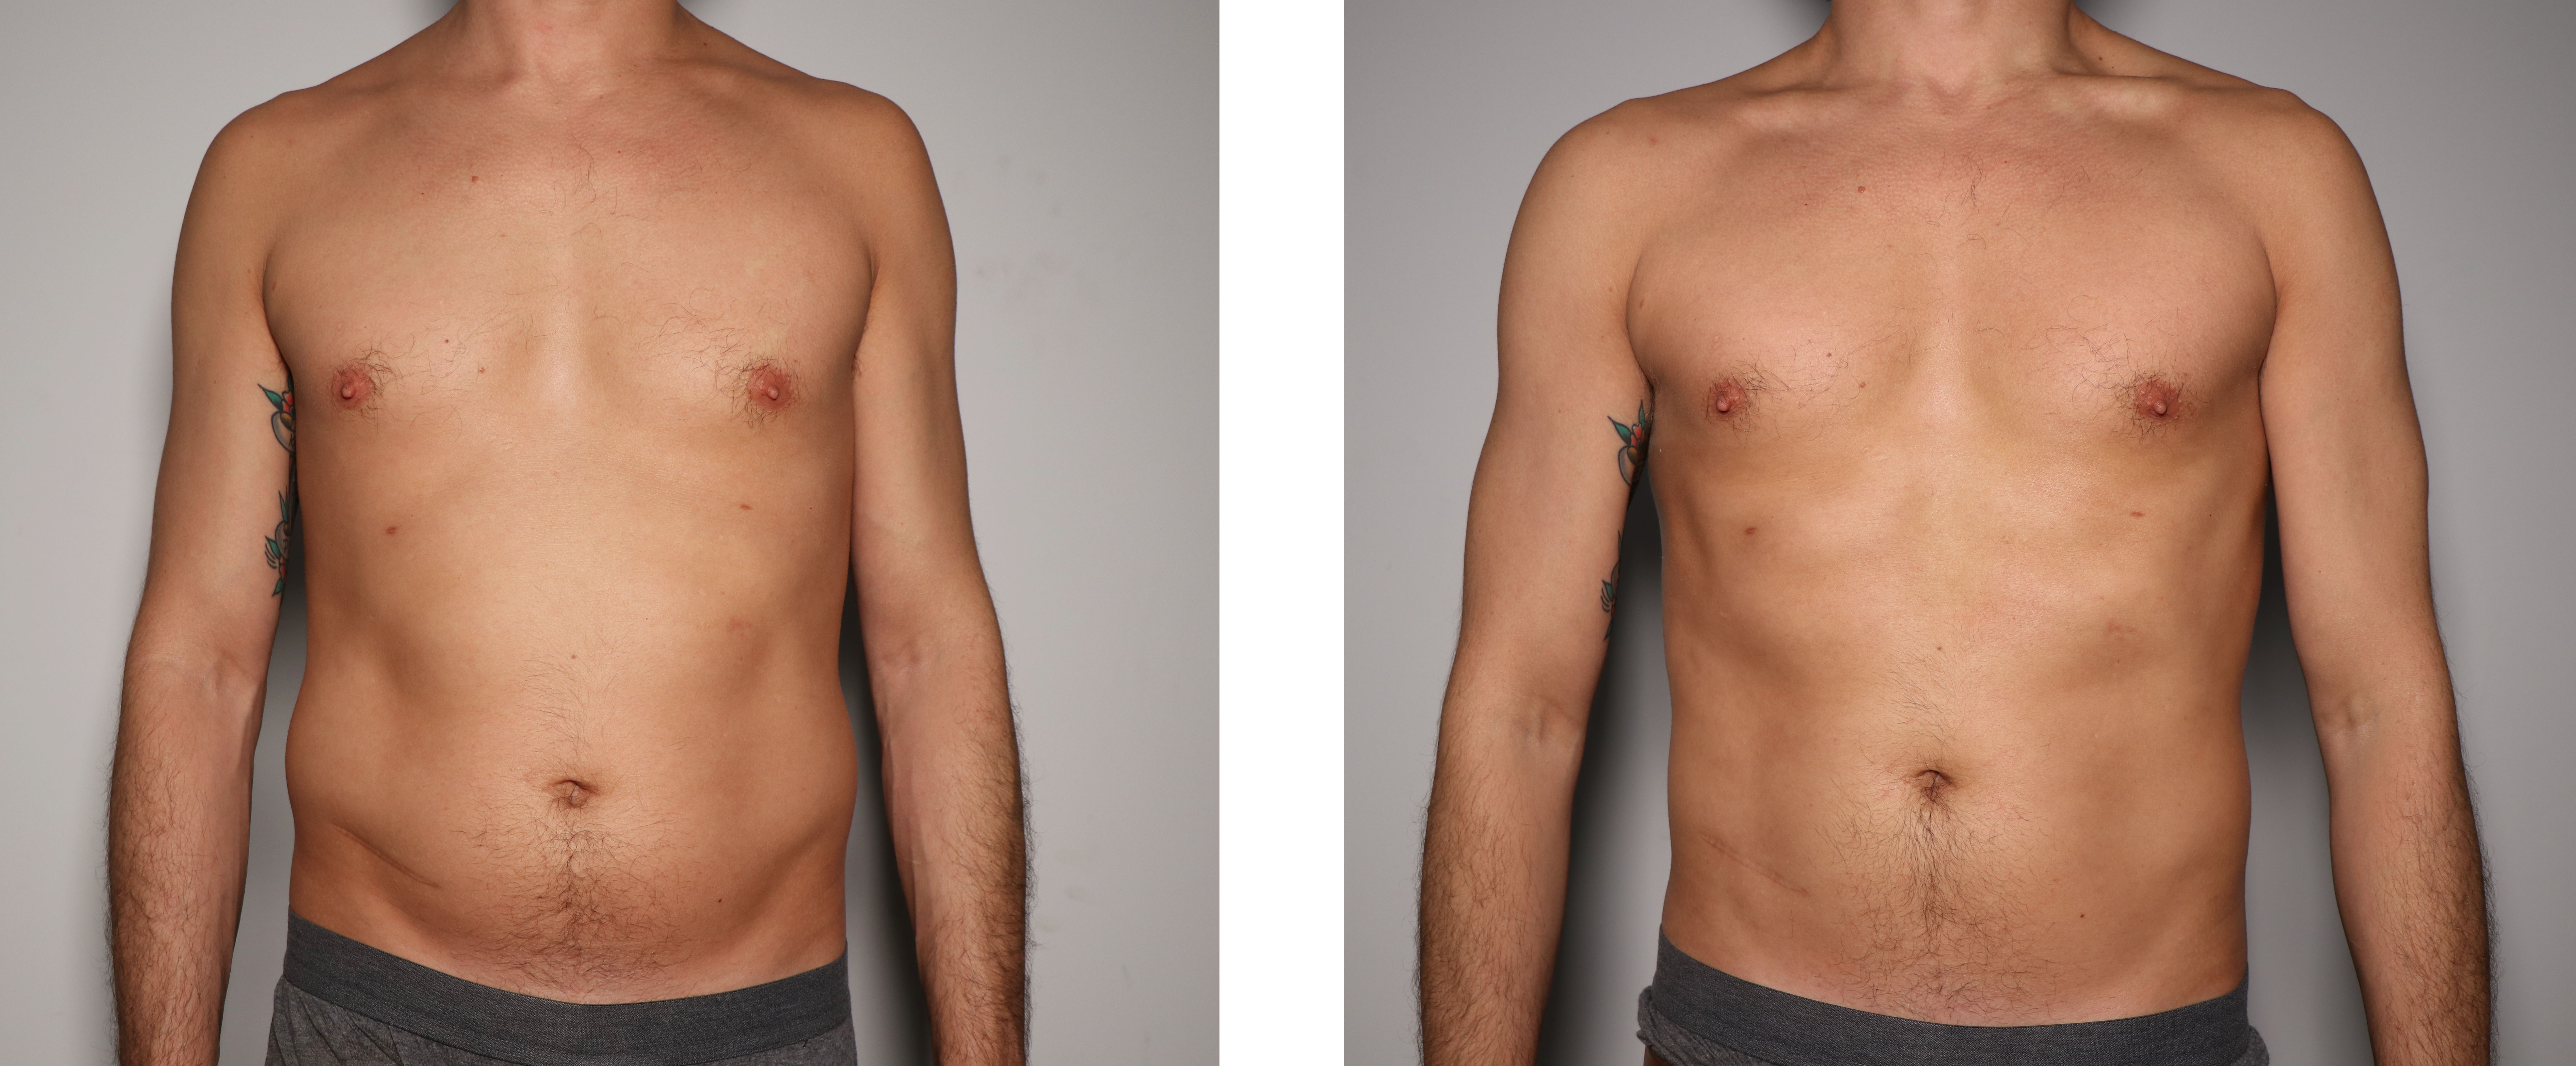 Male Abdomen Toning- Before & After